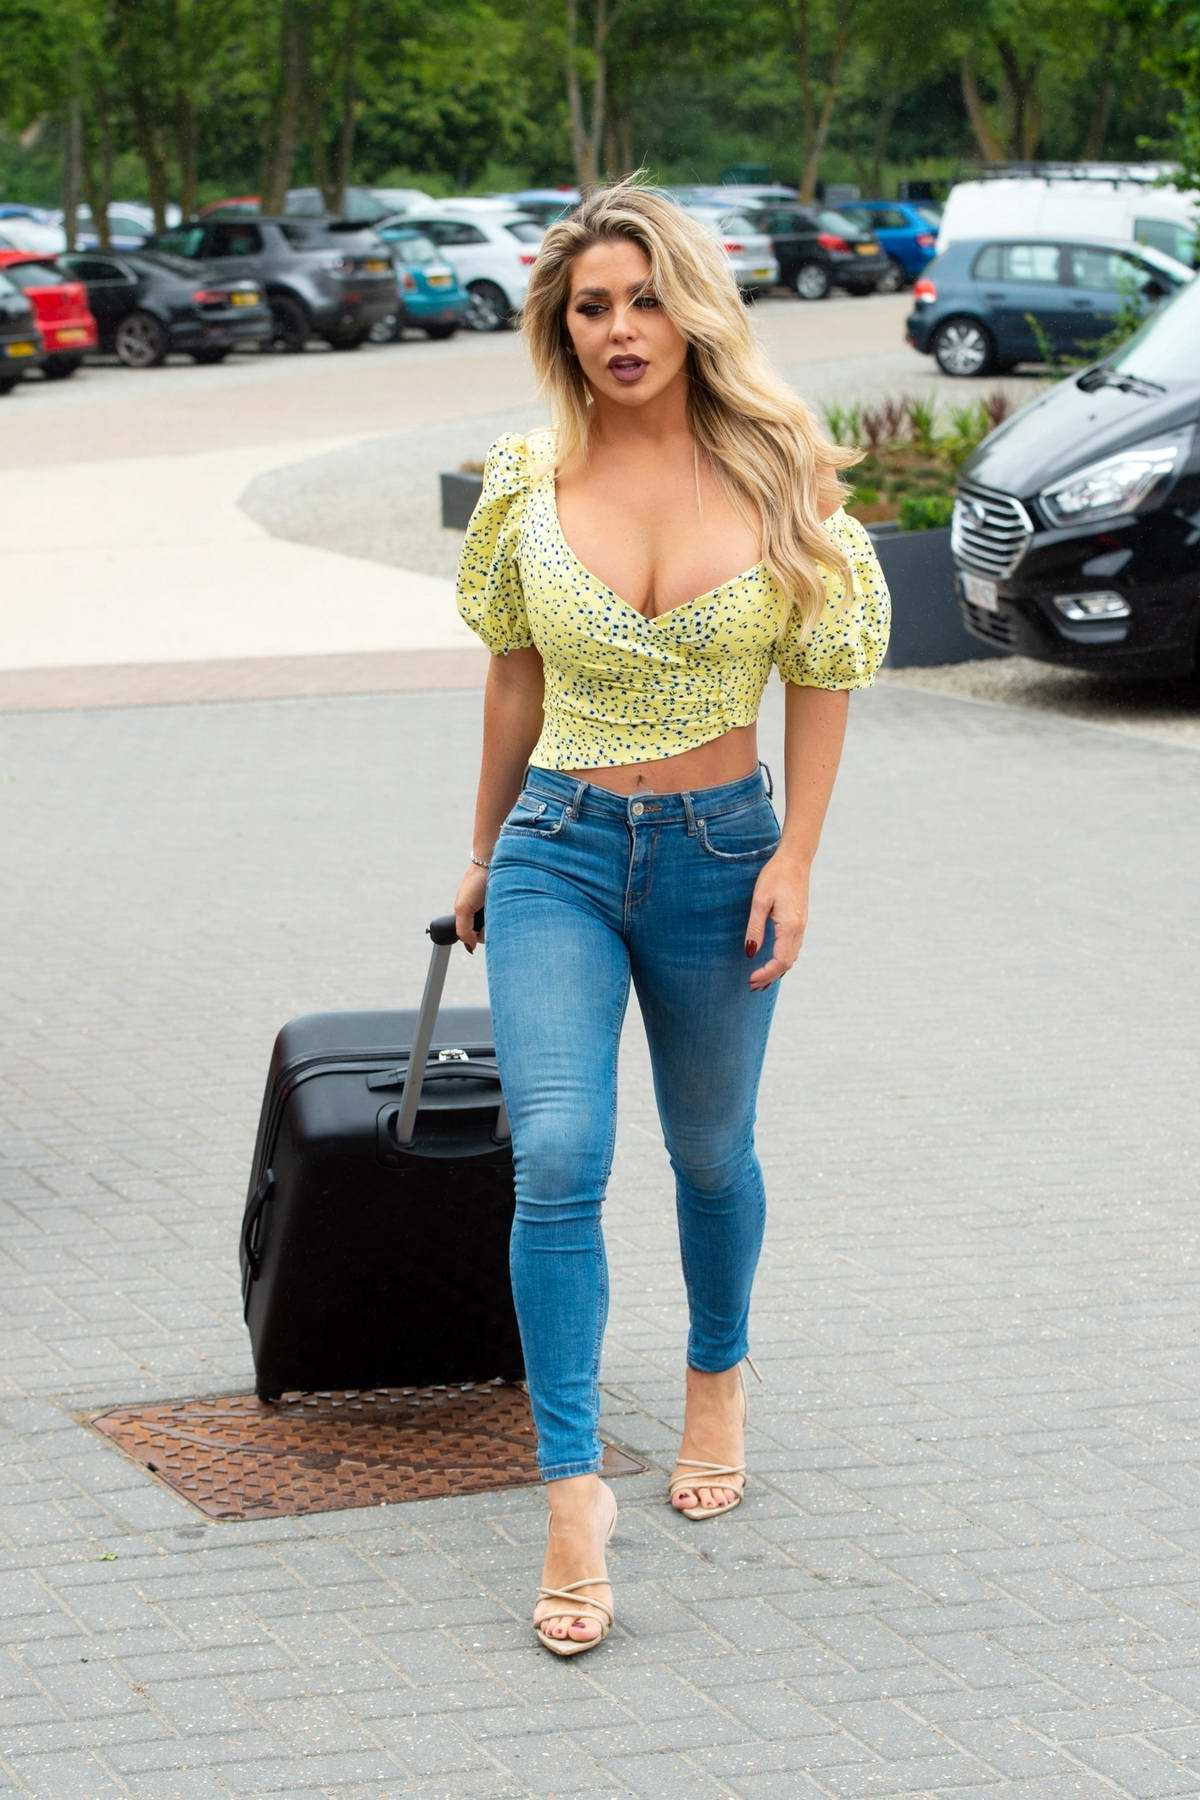 Bianca Gascoigne and Kris Boyson seen arriving at The Cave hotel in Faversham, Kent, UK